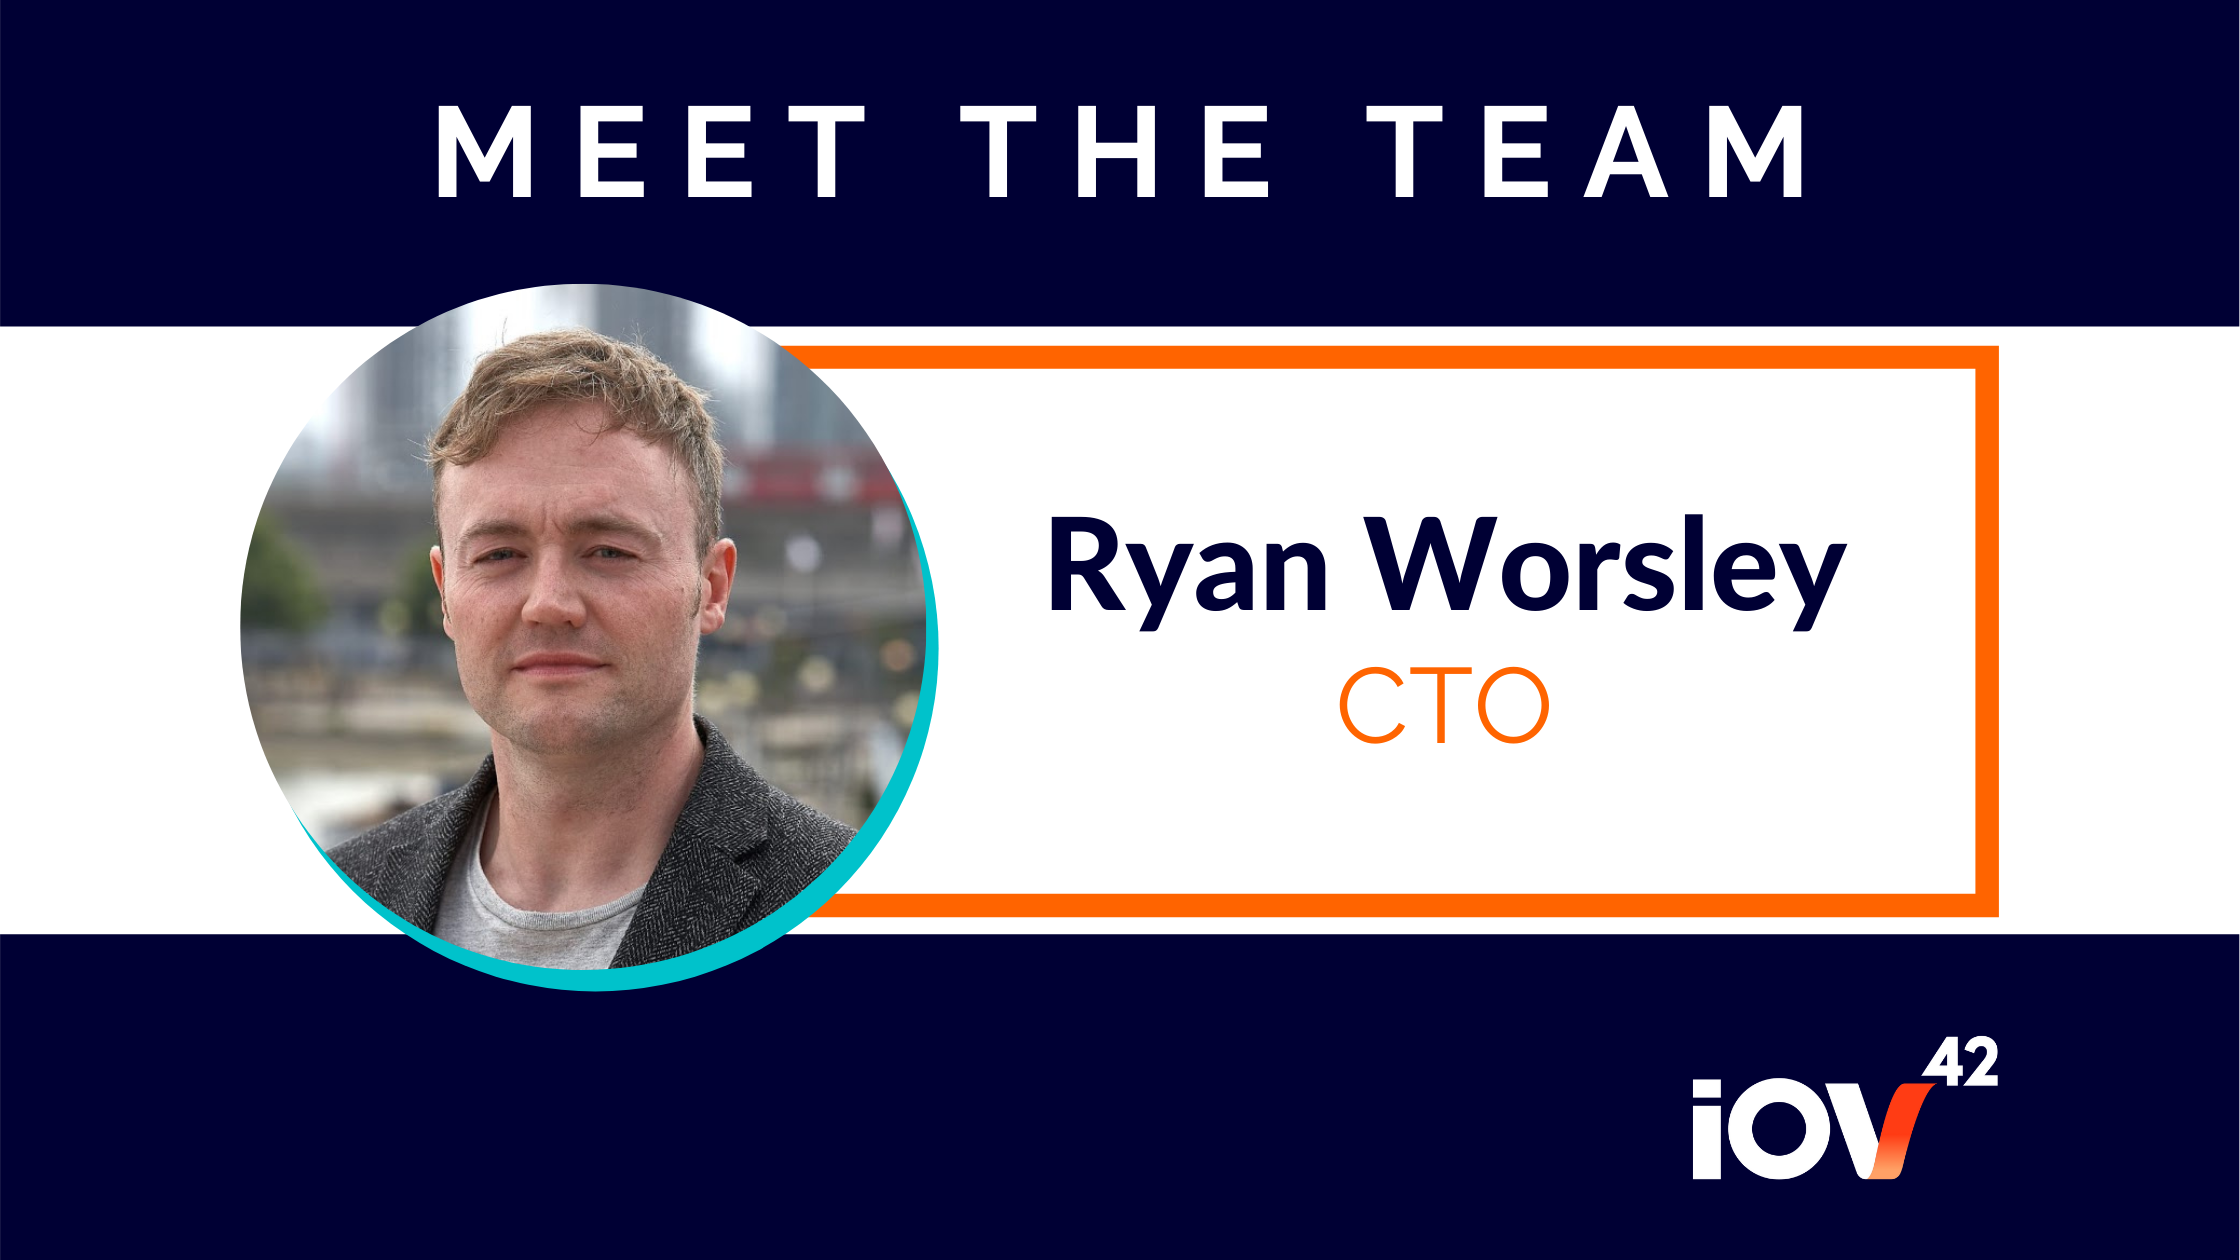 iov42 CTO Ryan Worsley is a self-proclaimed geek with a knack for problem solving